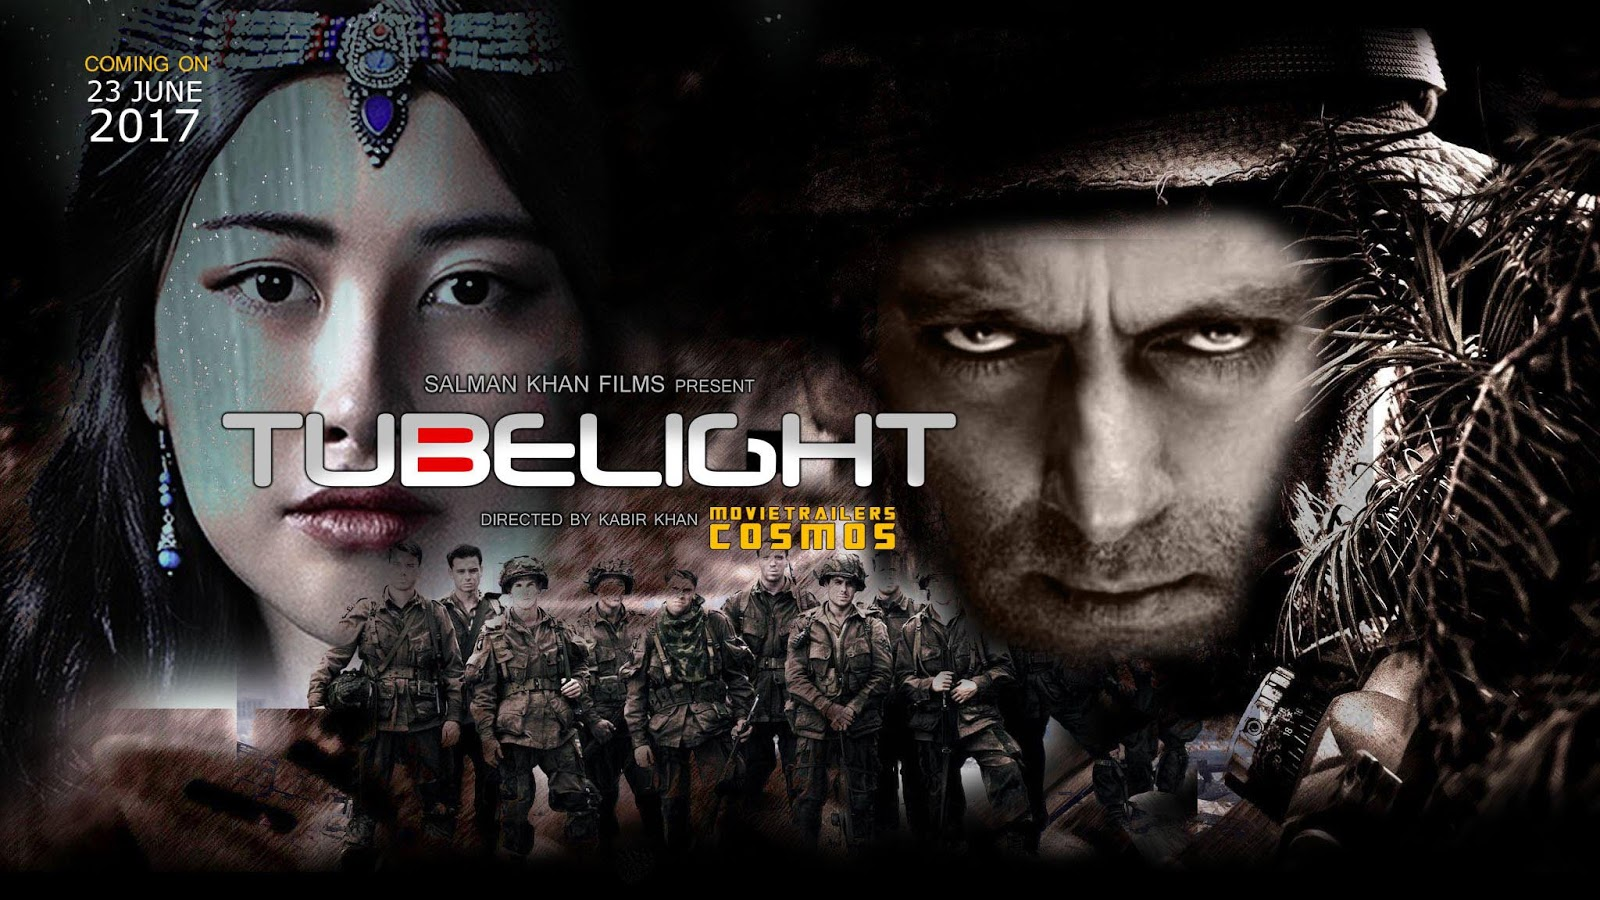 Tubelight Is An Upcoming Bollywood Movie Hd Wallpapers -5793